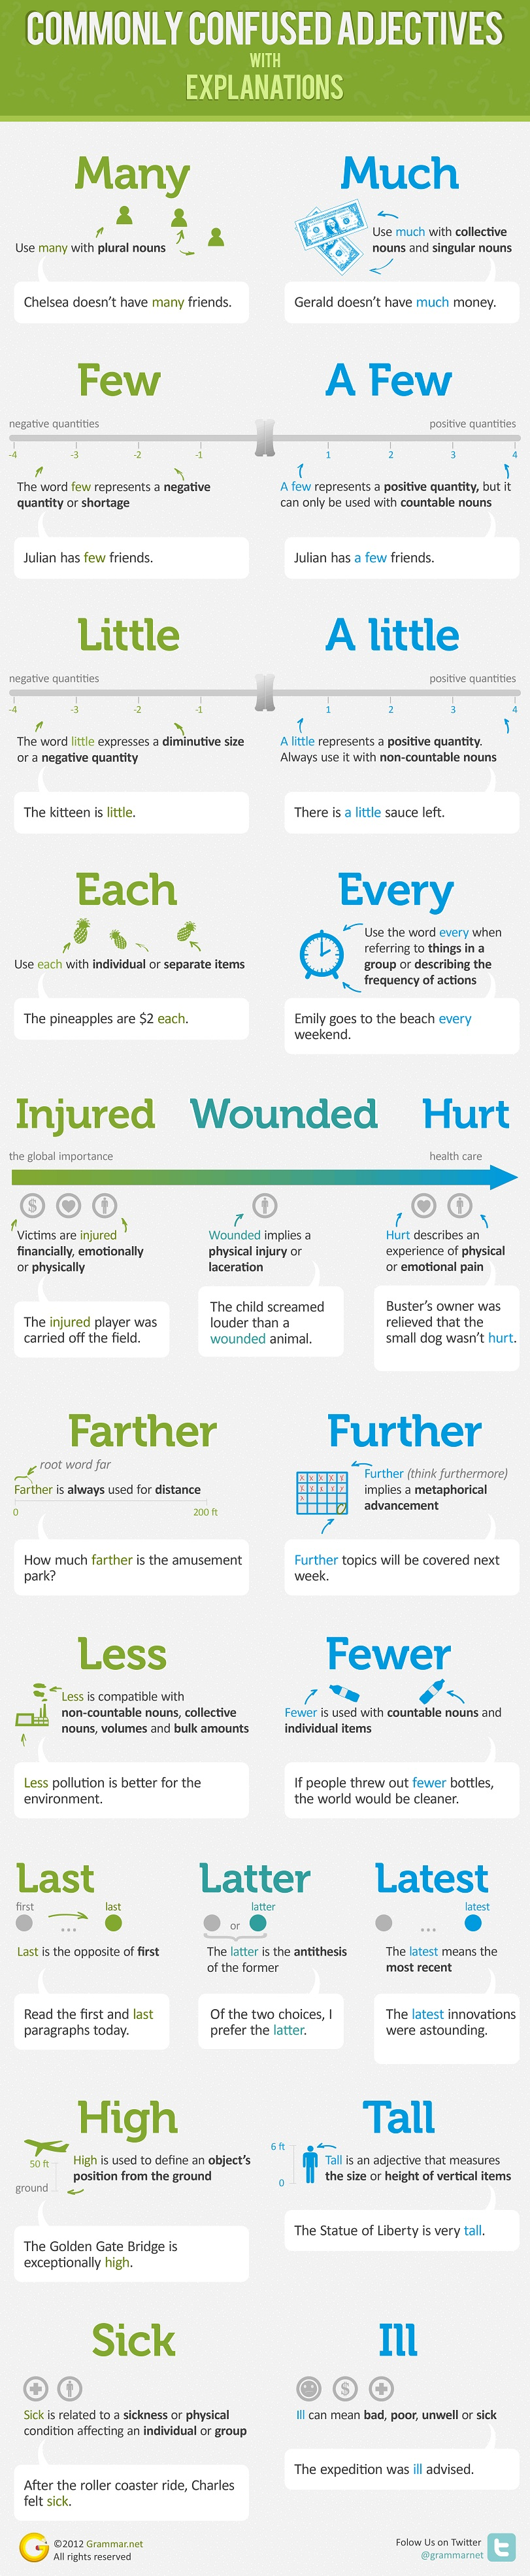 Infographic Commonly Confused Adjectives with Explanation